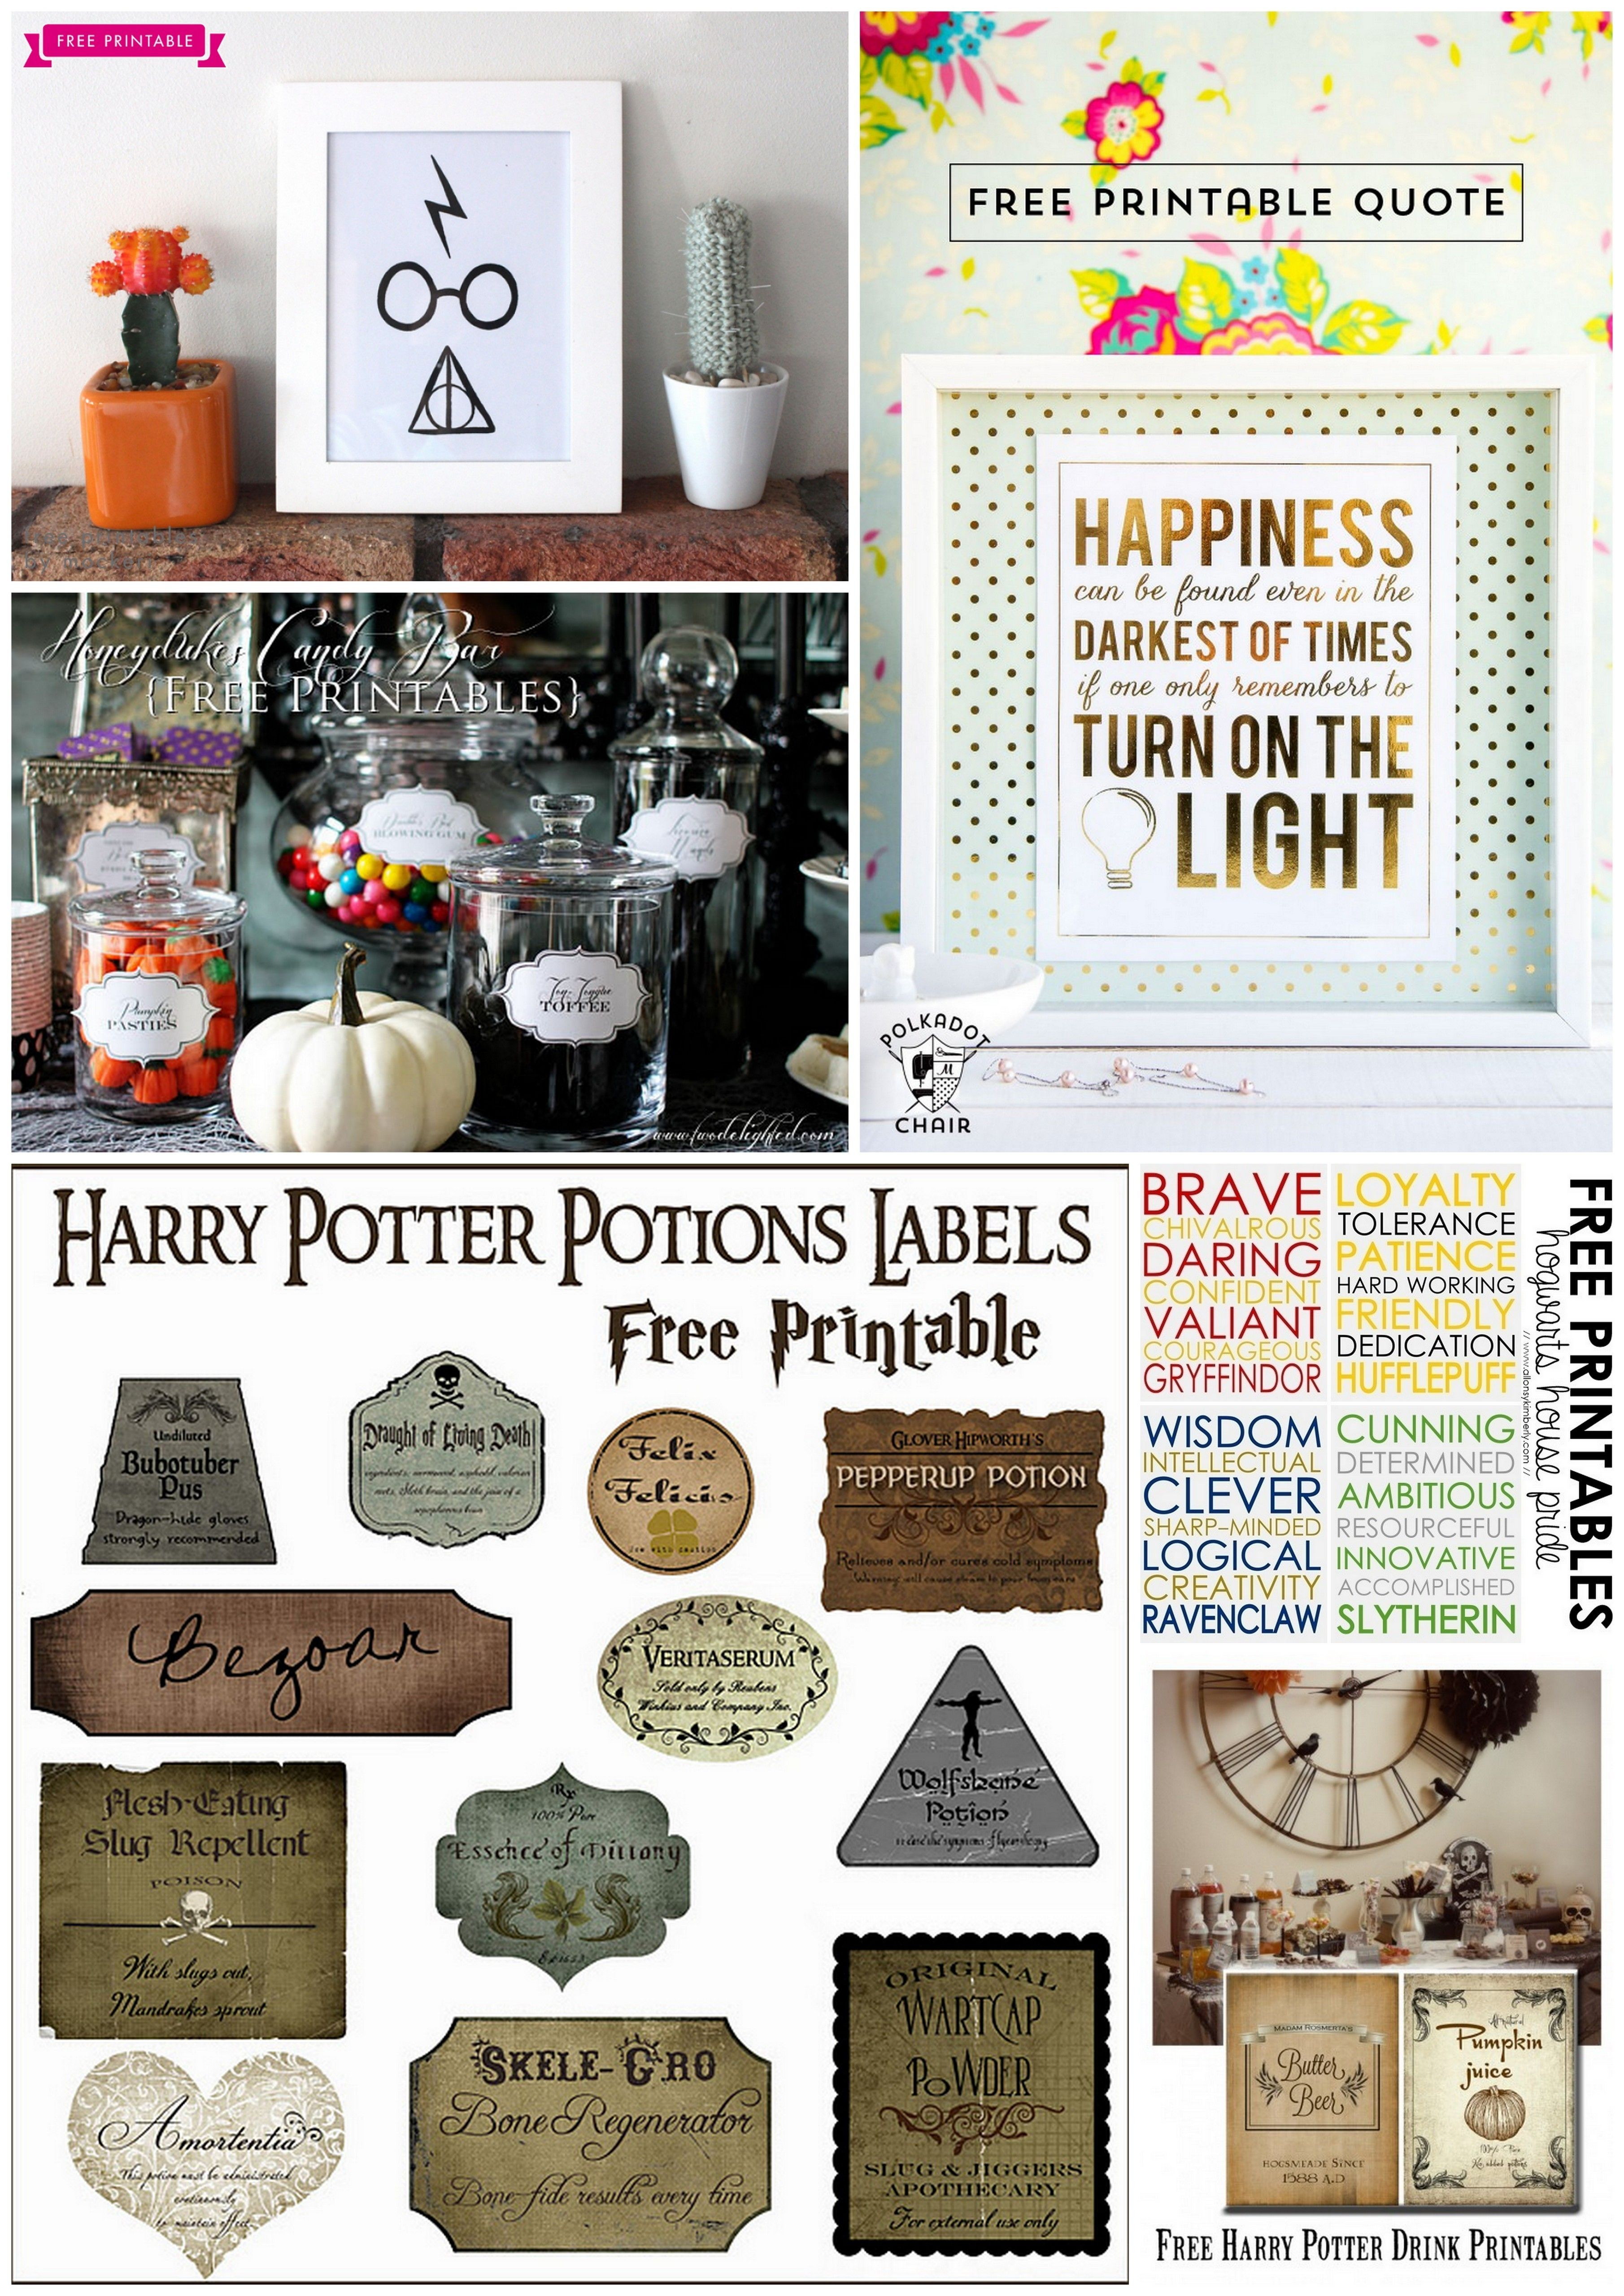 6 Free Harry Potter Themed Printables